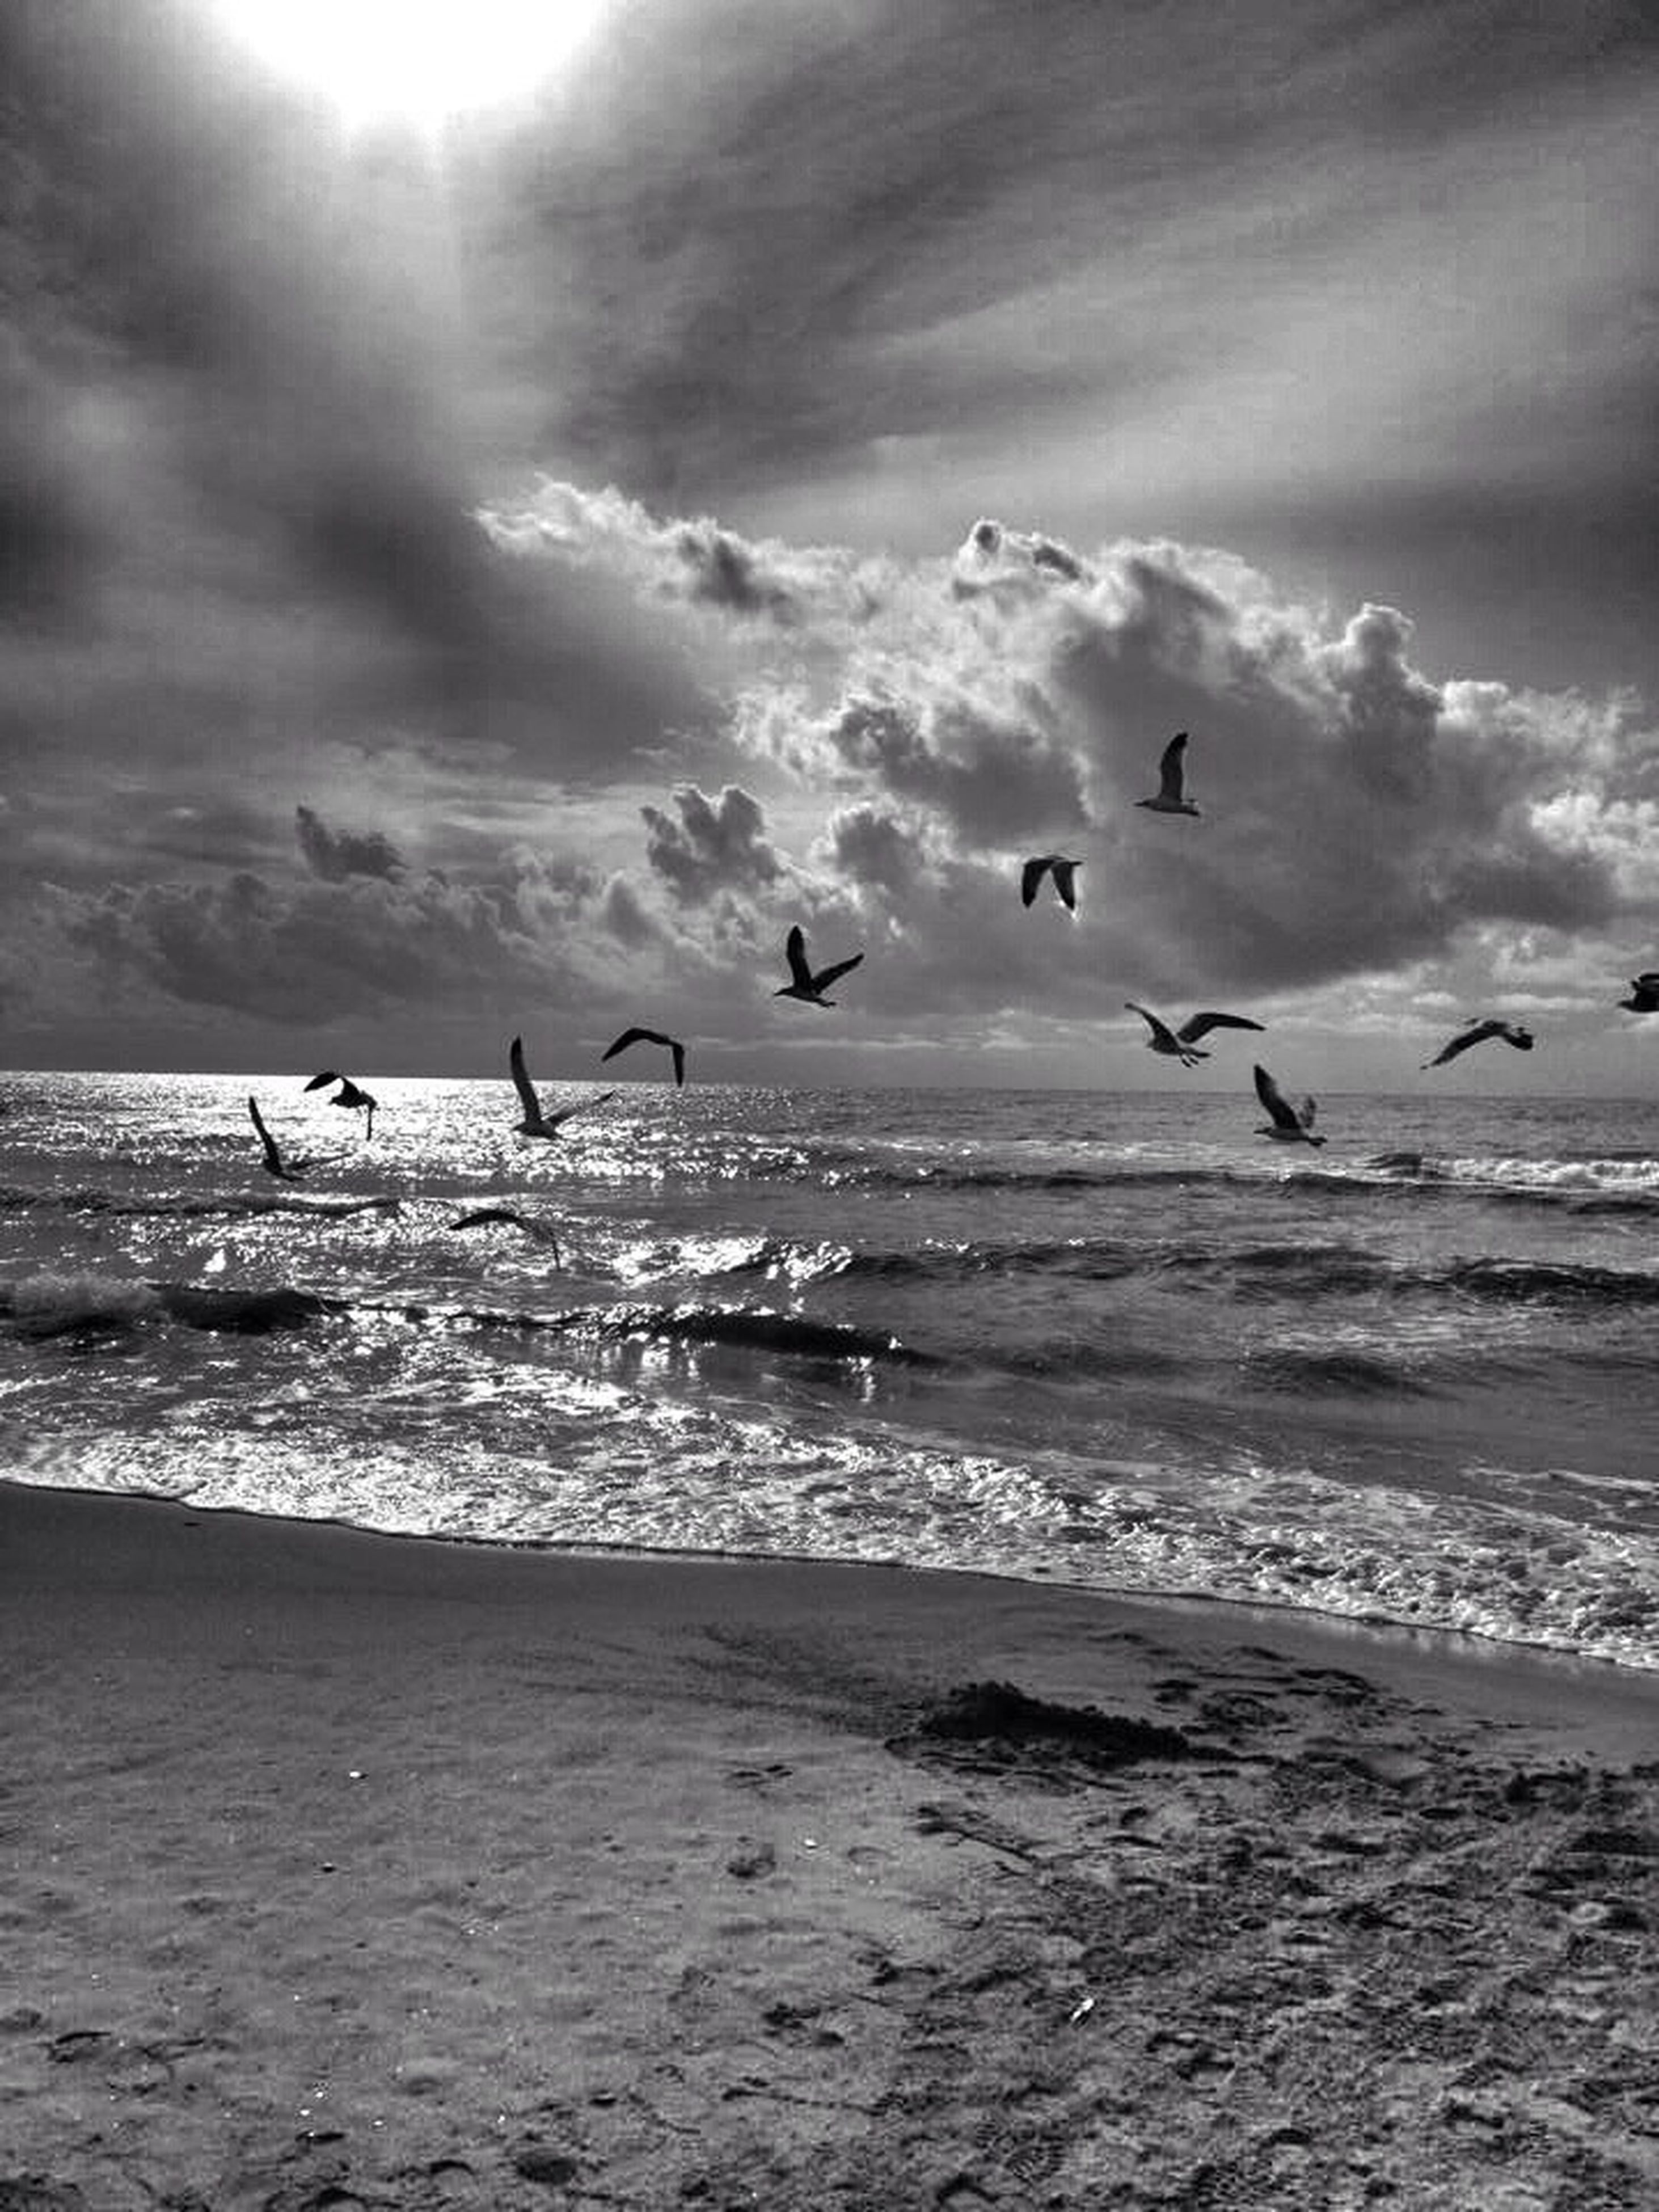 sea, bird, beach, flying, water, animal themes, horizon over water, animals in the wild, sky, wildlife, shore, beauty in nature, scenics, nature, seagull, flock of birds, sand, cloud - sky, tranquil scene